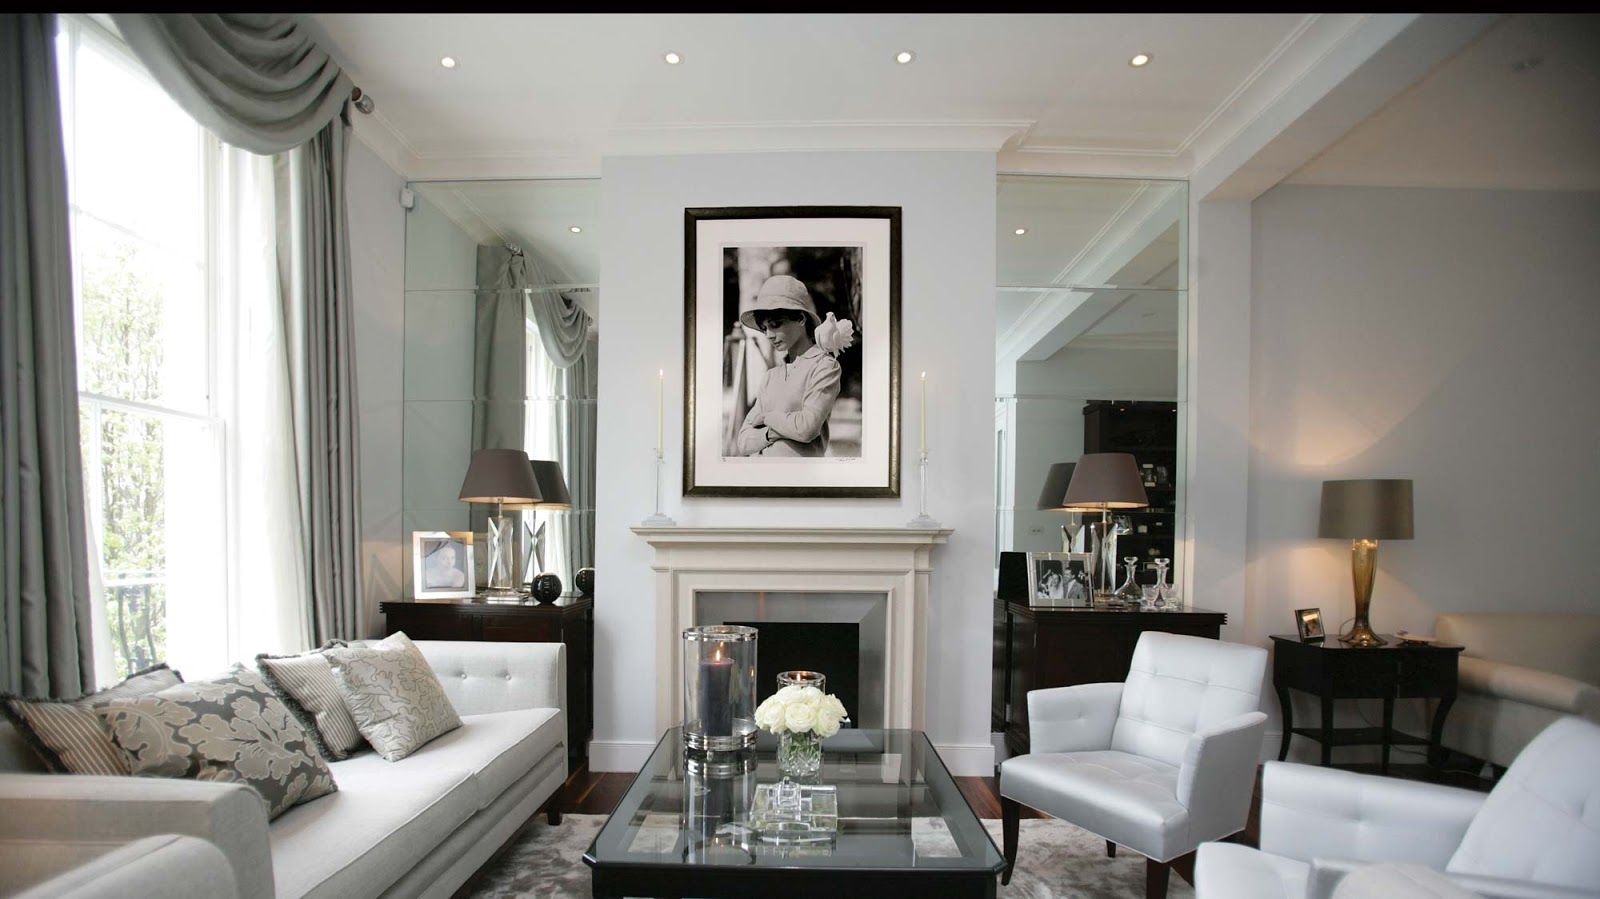 In love with beauty inspiring interiors by katharine pooley for Best interior designers london